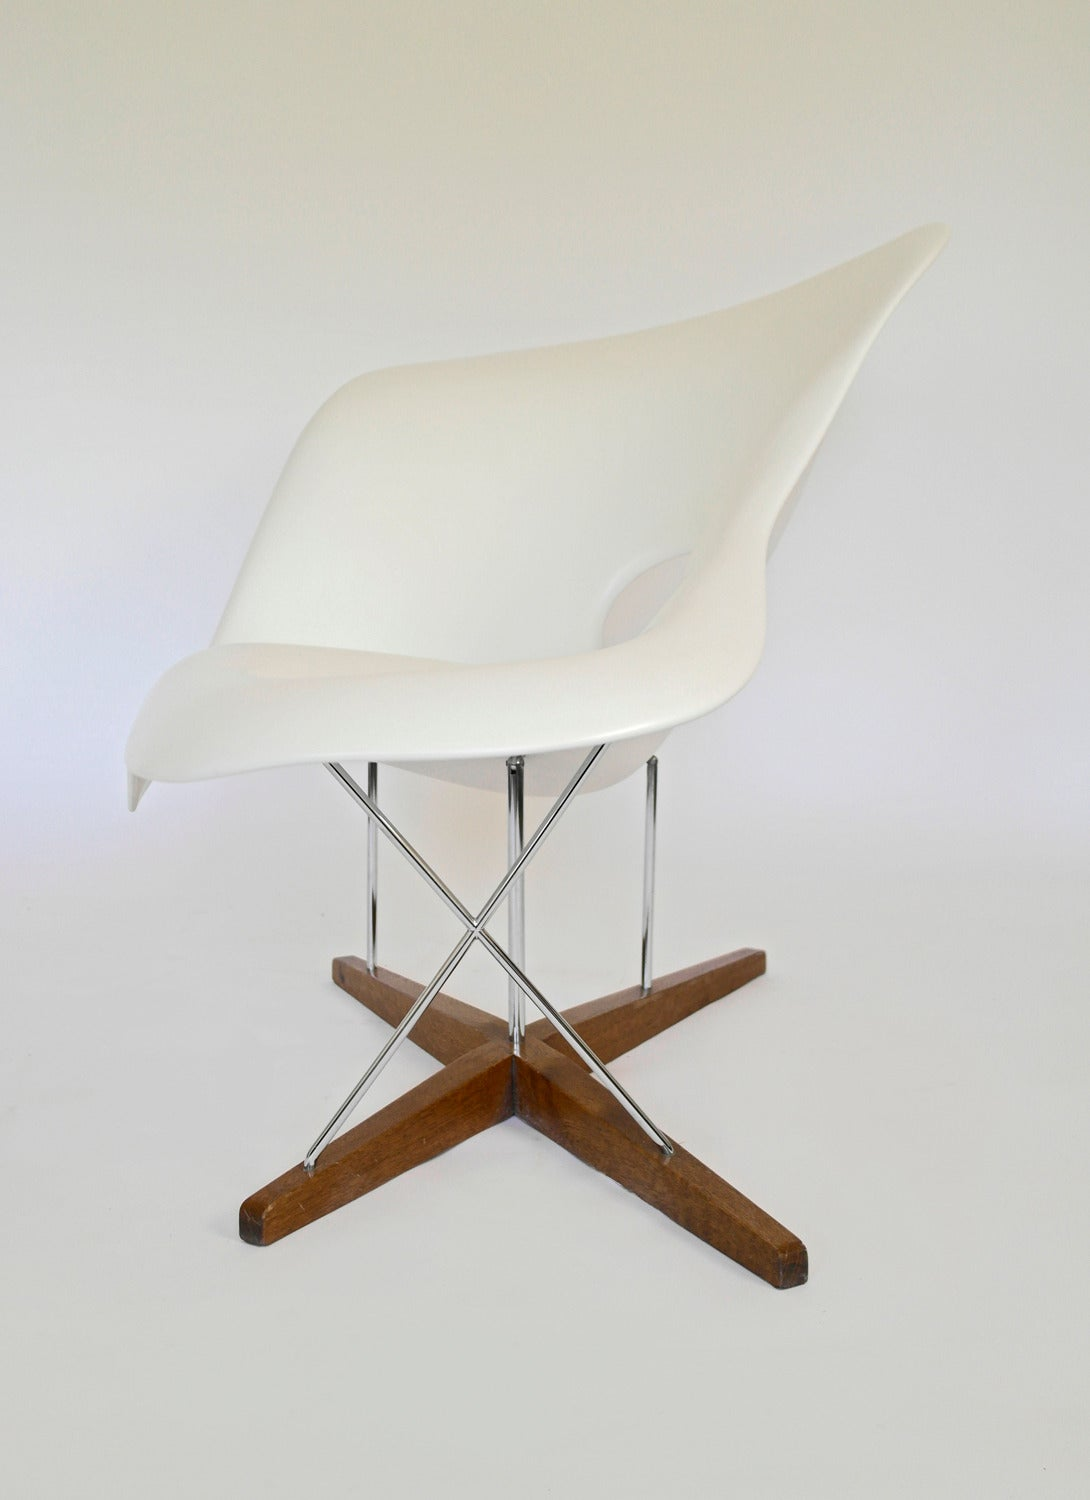 Vitra edition la chaise by charles and ray eames at 1stdibs for Chaise eames bascule